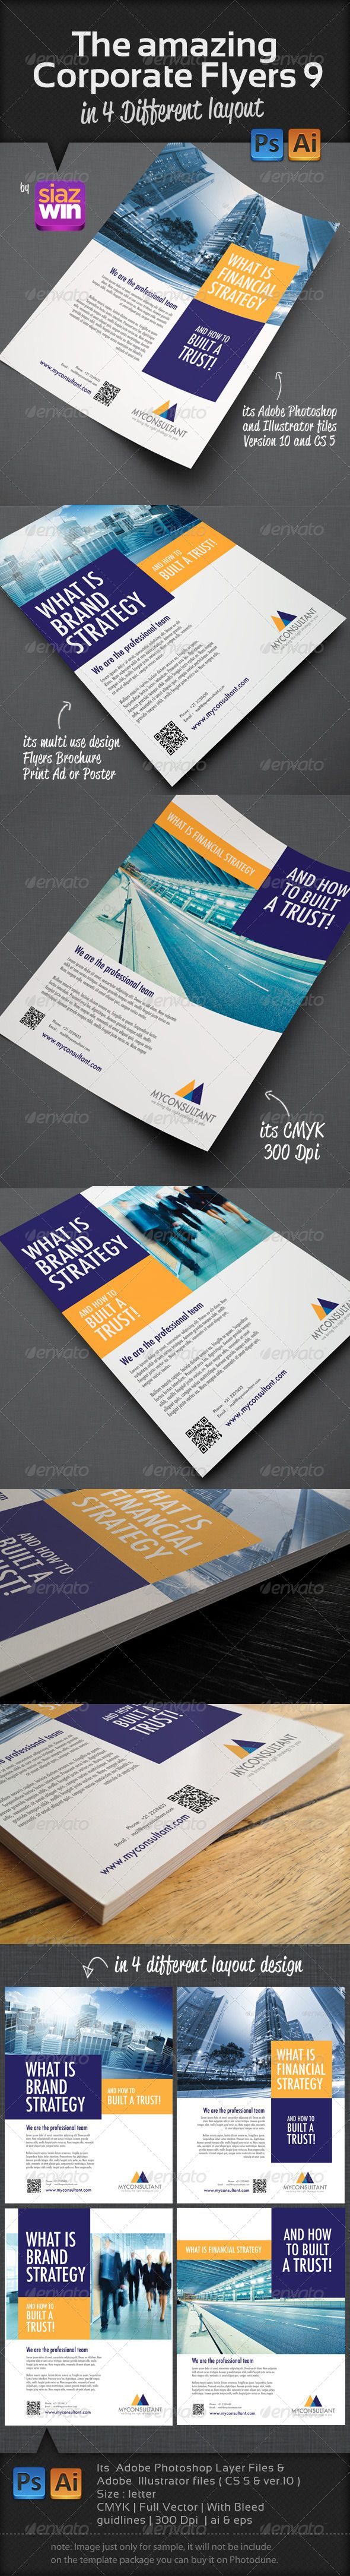 6 poster design photo mockups 57079 - The Amazing Corporate Flyers 9